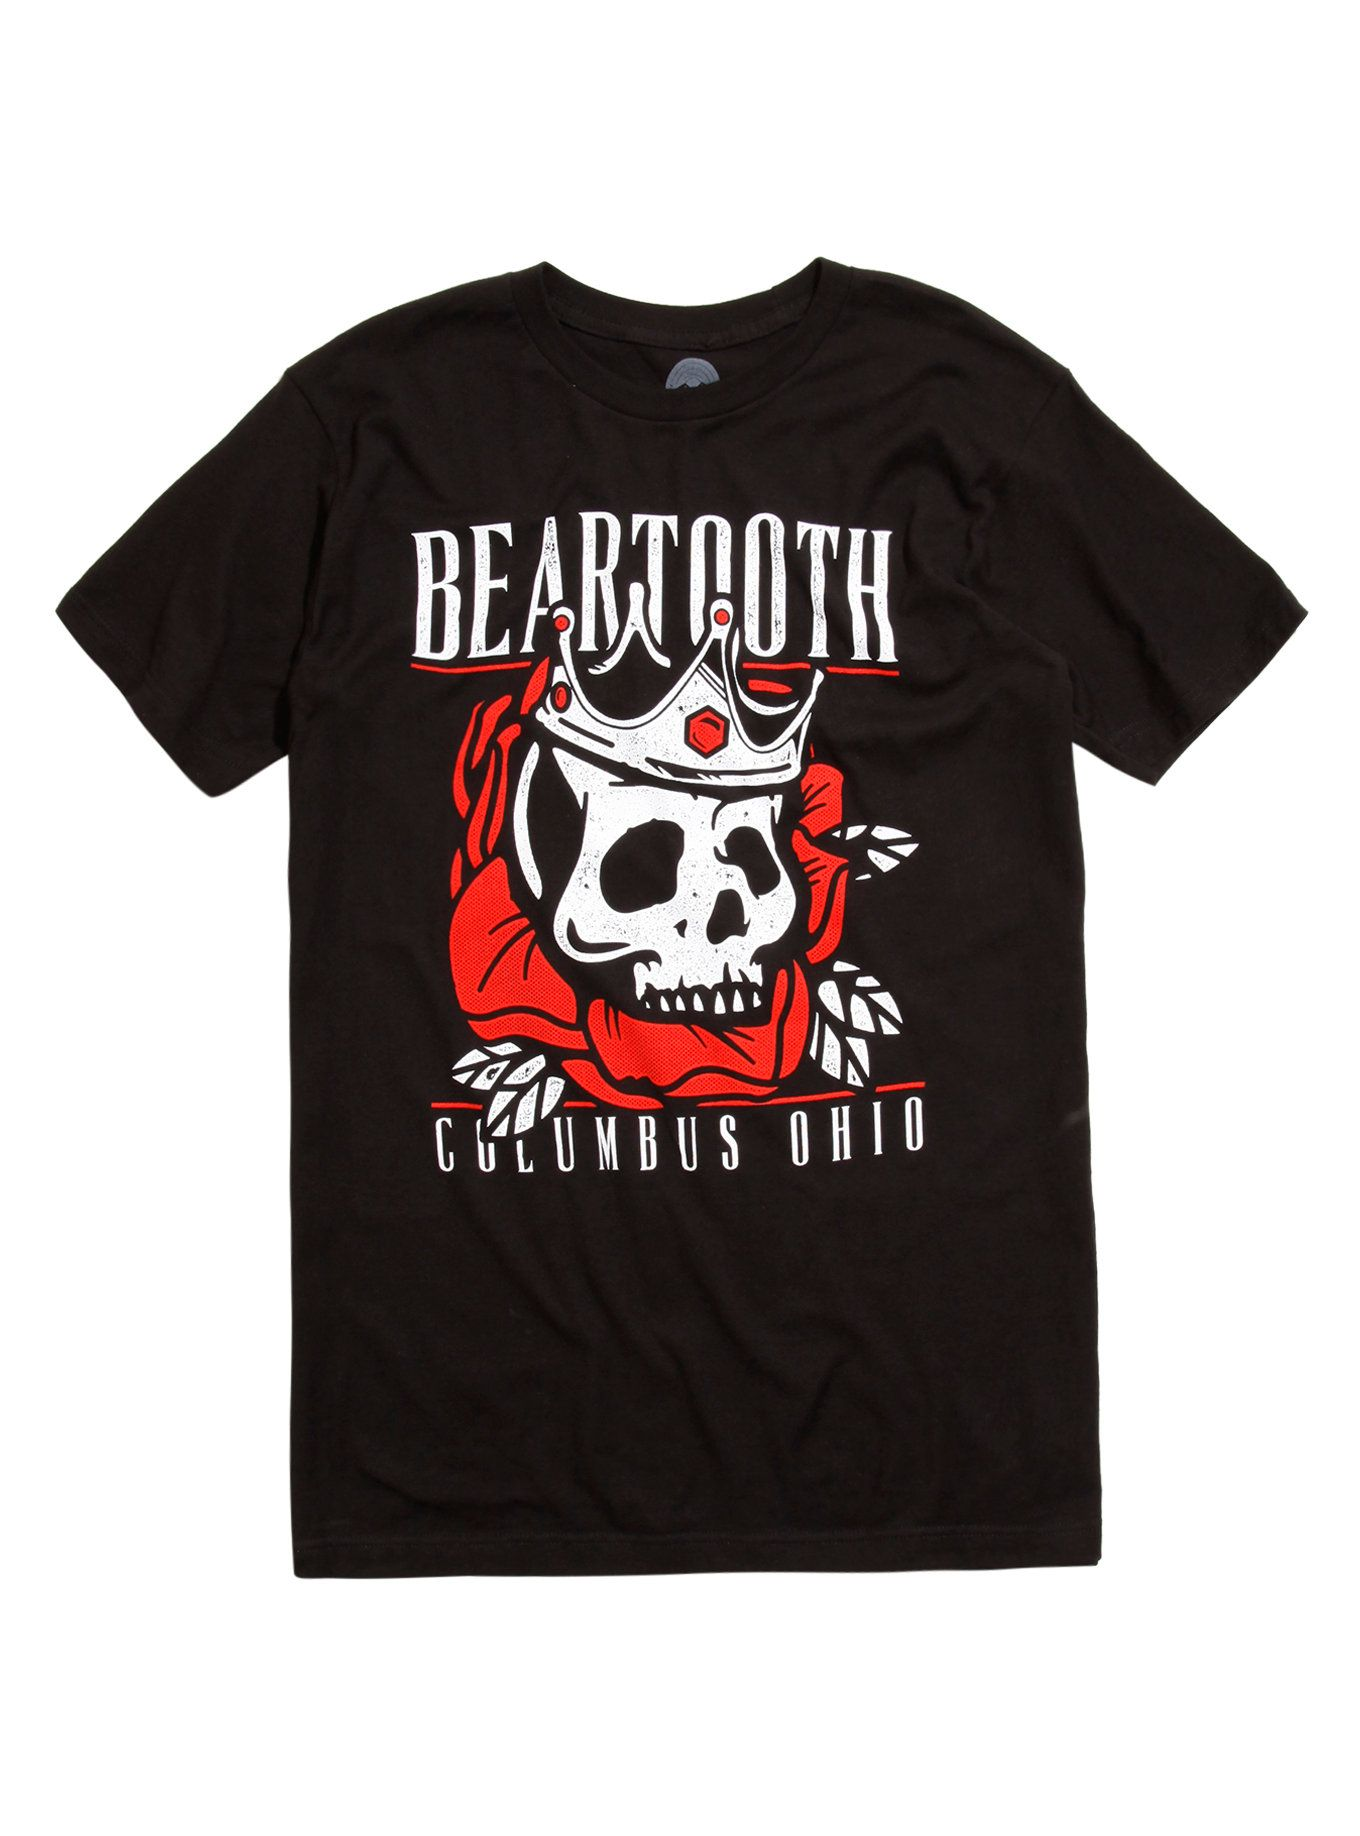 Beartooth Toddler T-Shirt 100/% Cotton Band Graphic Fashion Tops